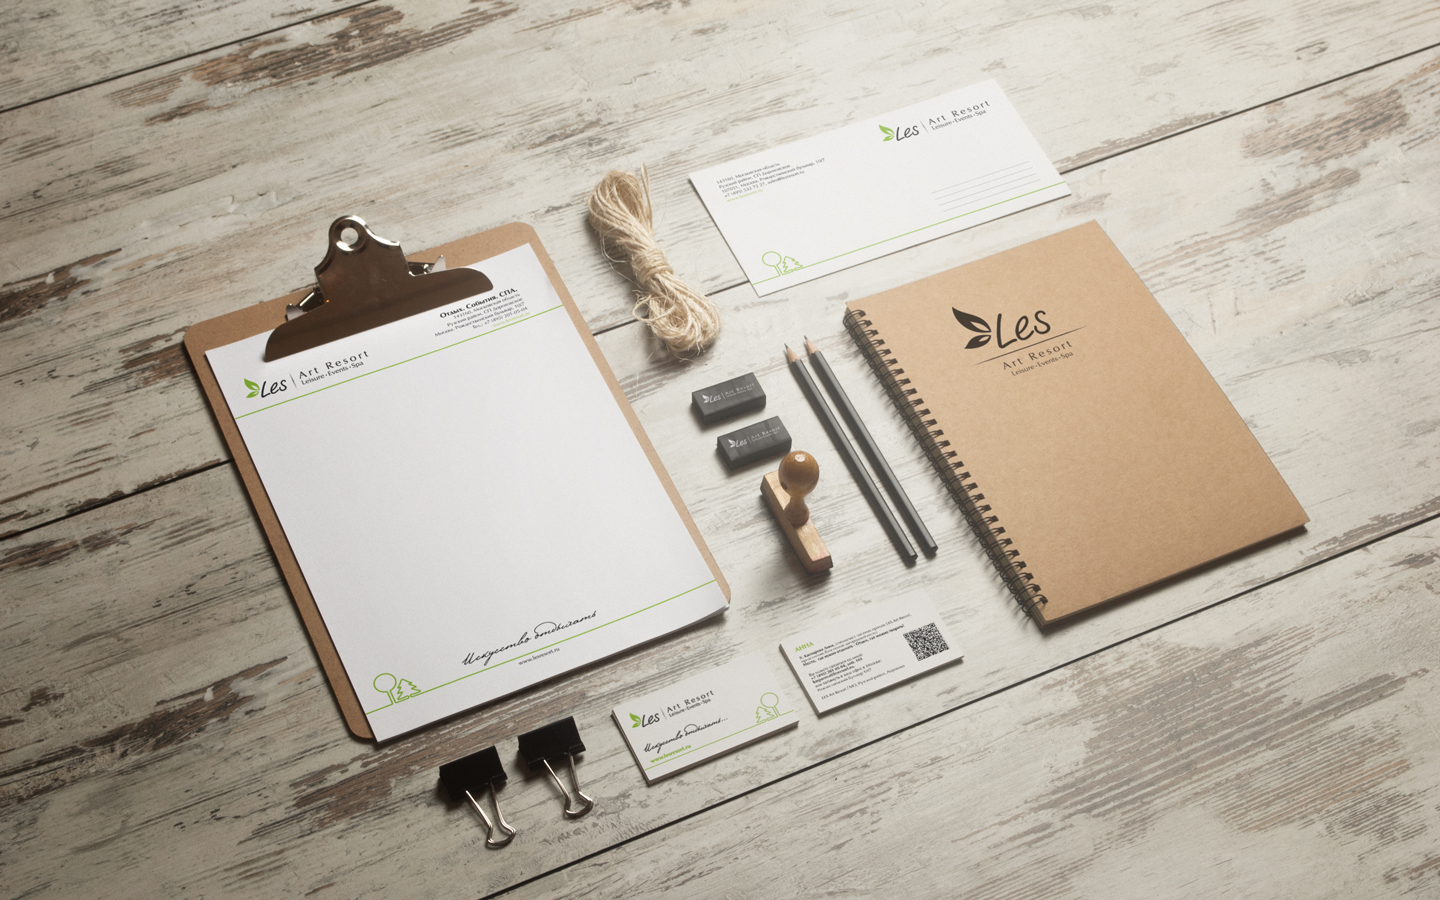 Branding kits for photographers Photographers Rights - Know your Rights! Bypeople